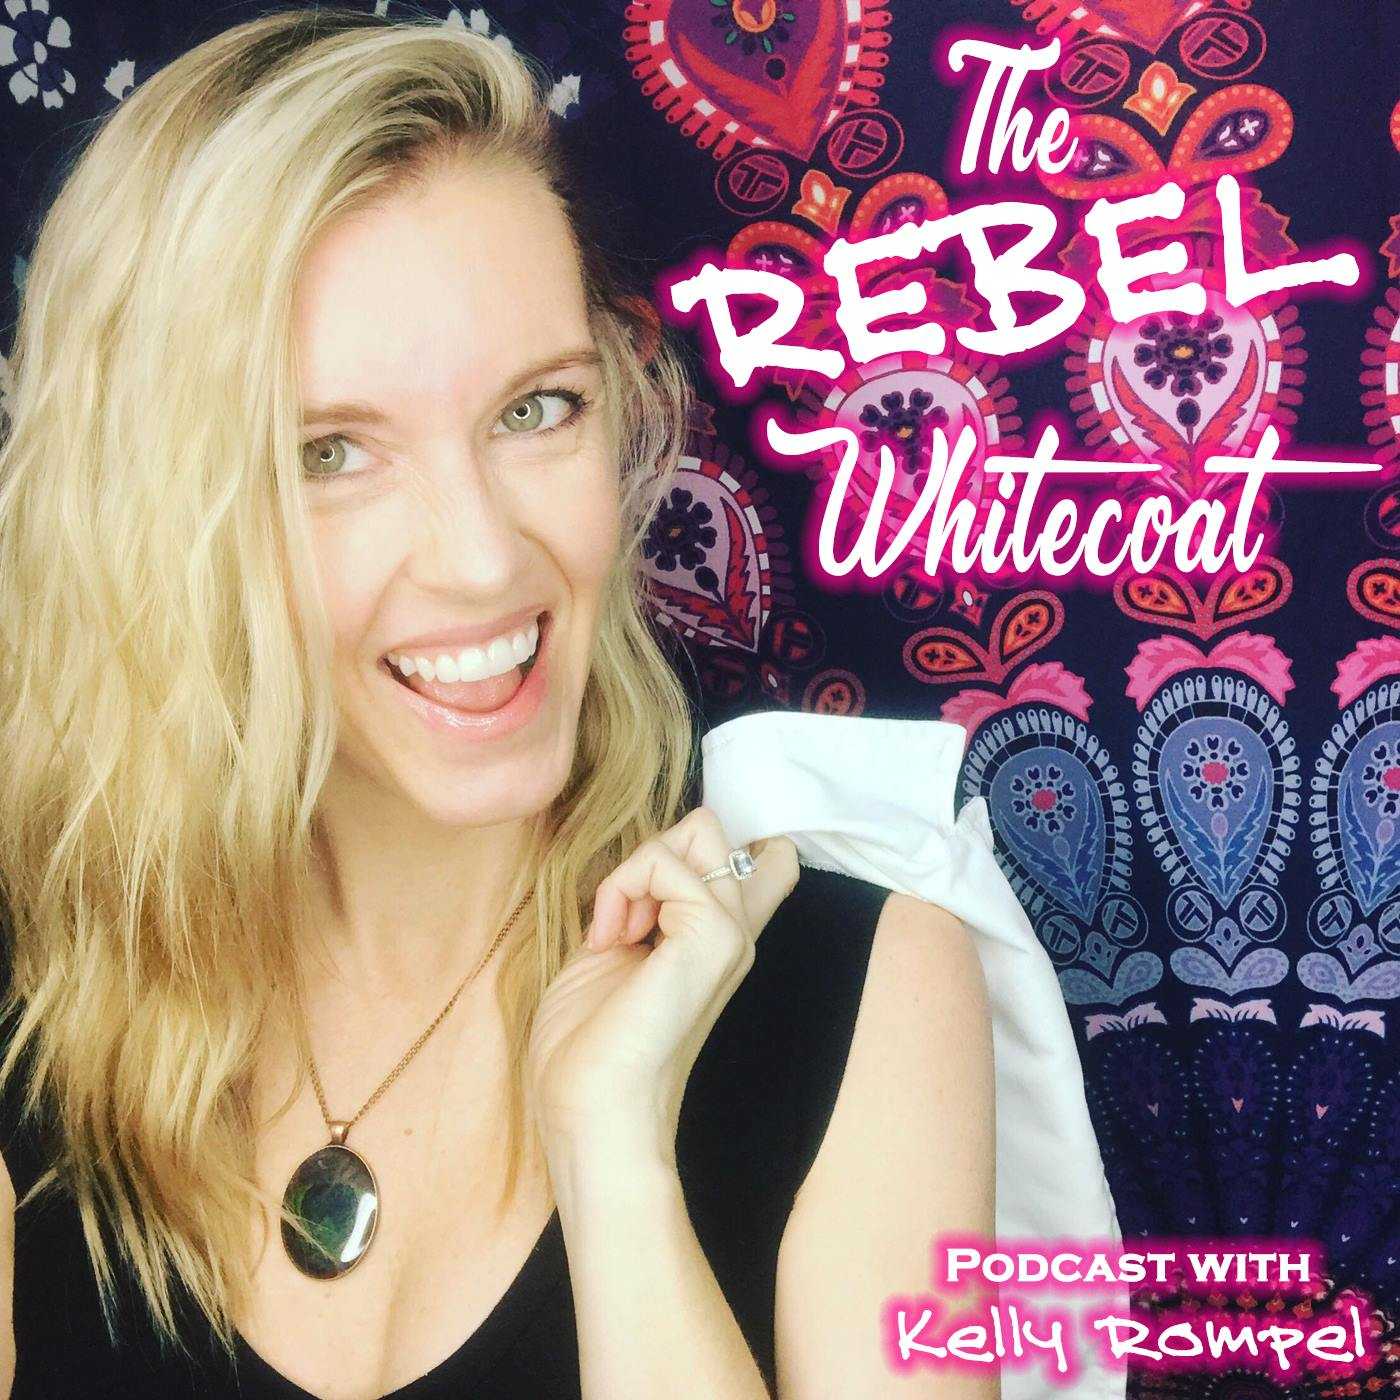 Rebel Whitecoat Podcast|Holistic Health|Natural Medicine for Energy, Mood, & Anxiety|Crunchie Moms|Spirituality show art